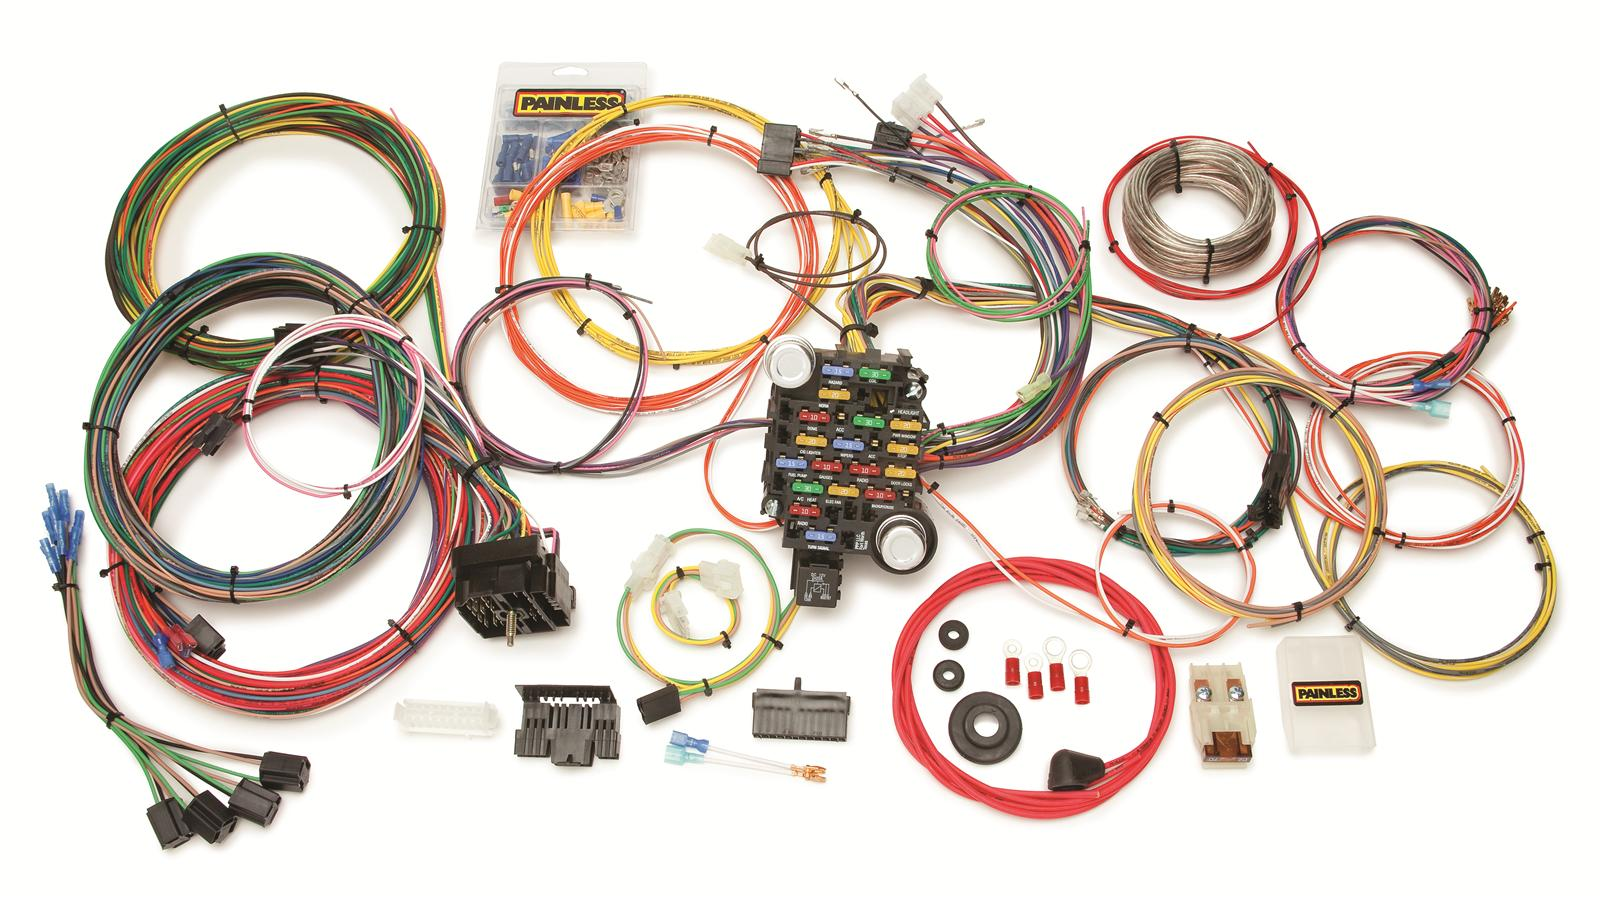 Truck Wiring Harnesses Diagrams Click Western Star Radio Diagram Painless Performance Gmc Chevy 10205 Free Shipping Harness Connectors